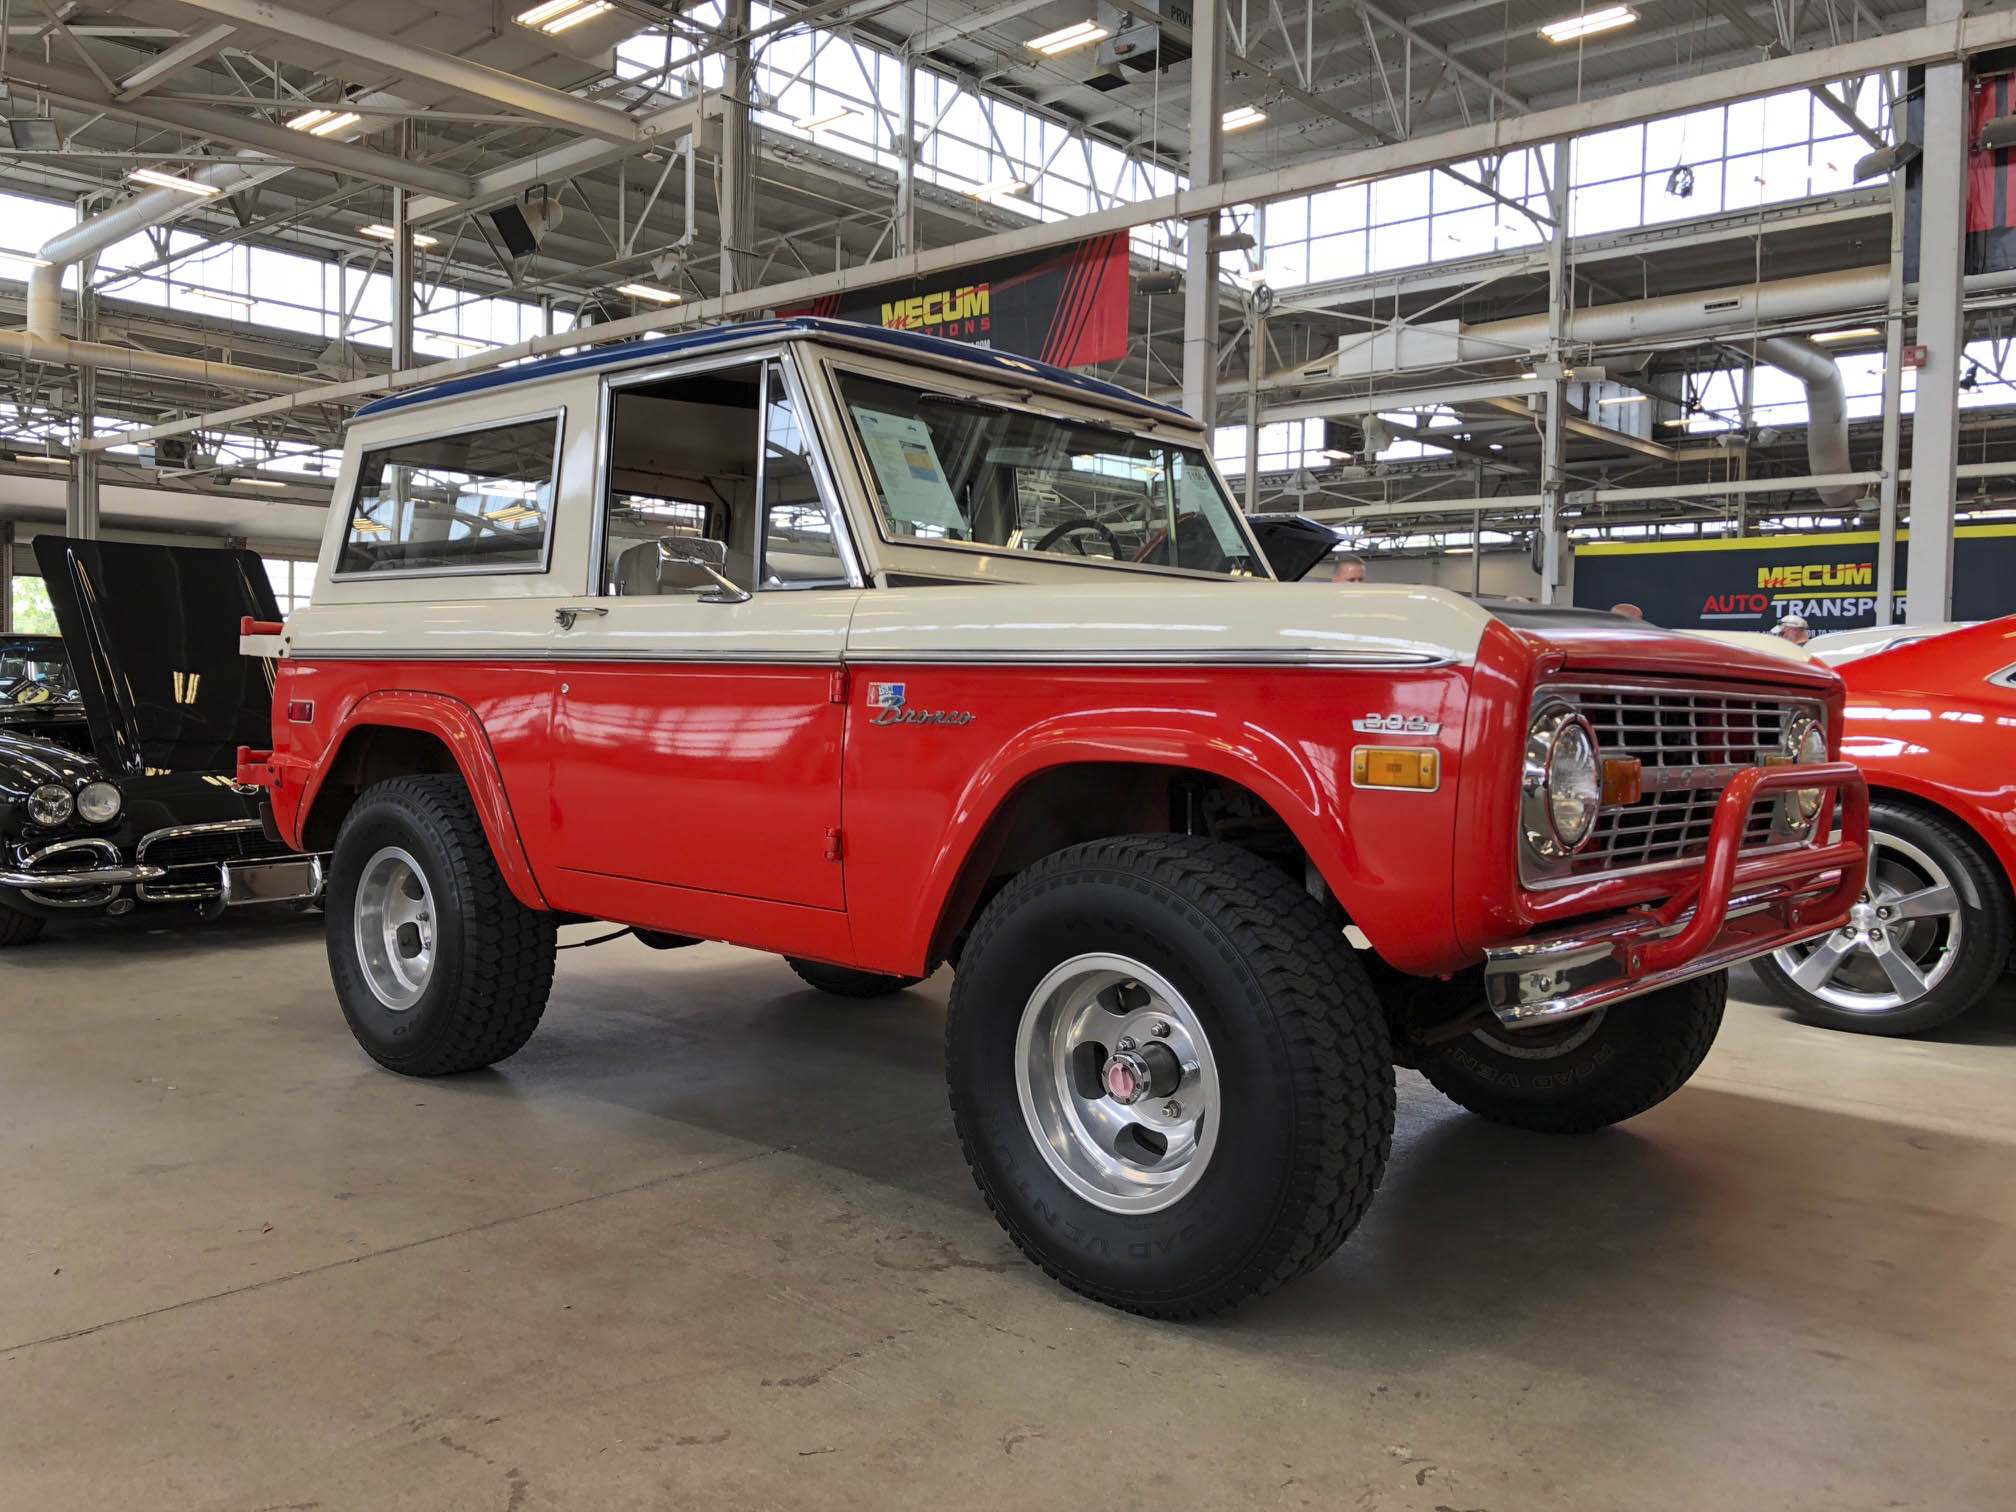 1971 Ford Baja Bronco on the Mecum show floor